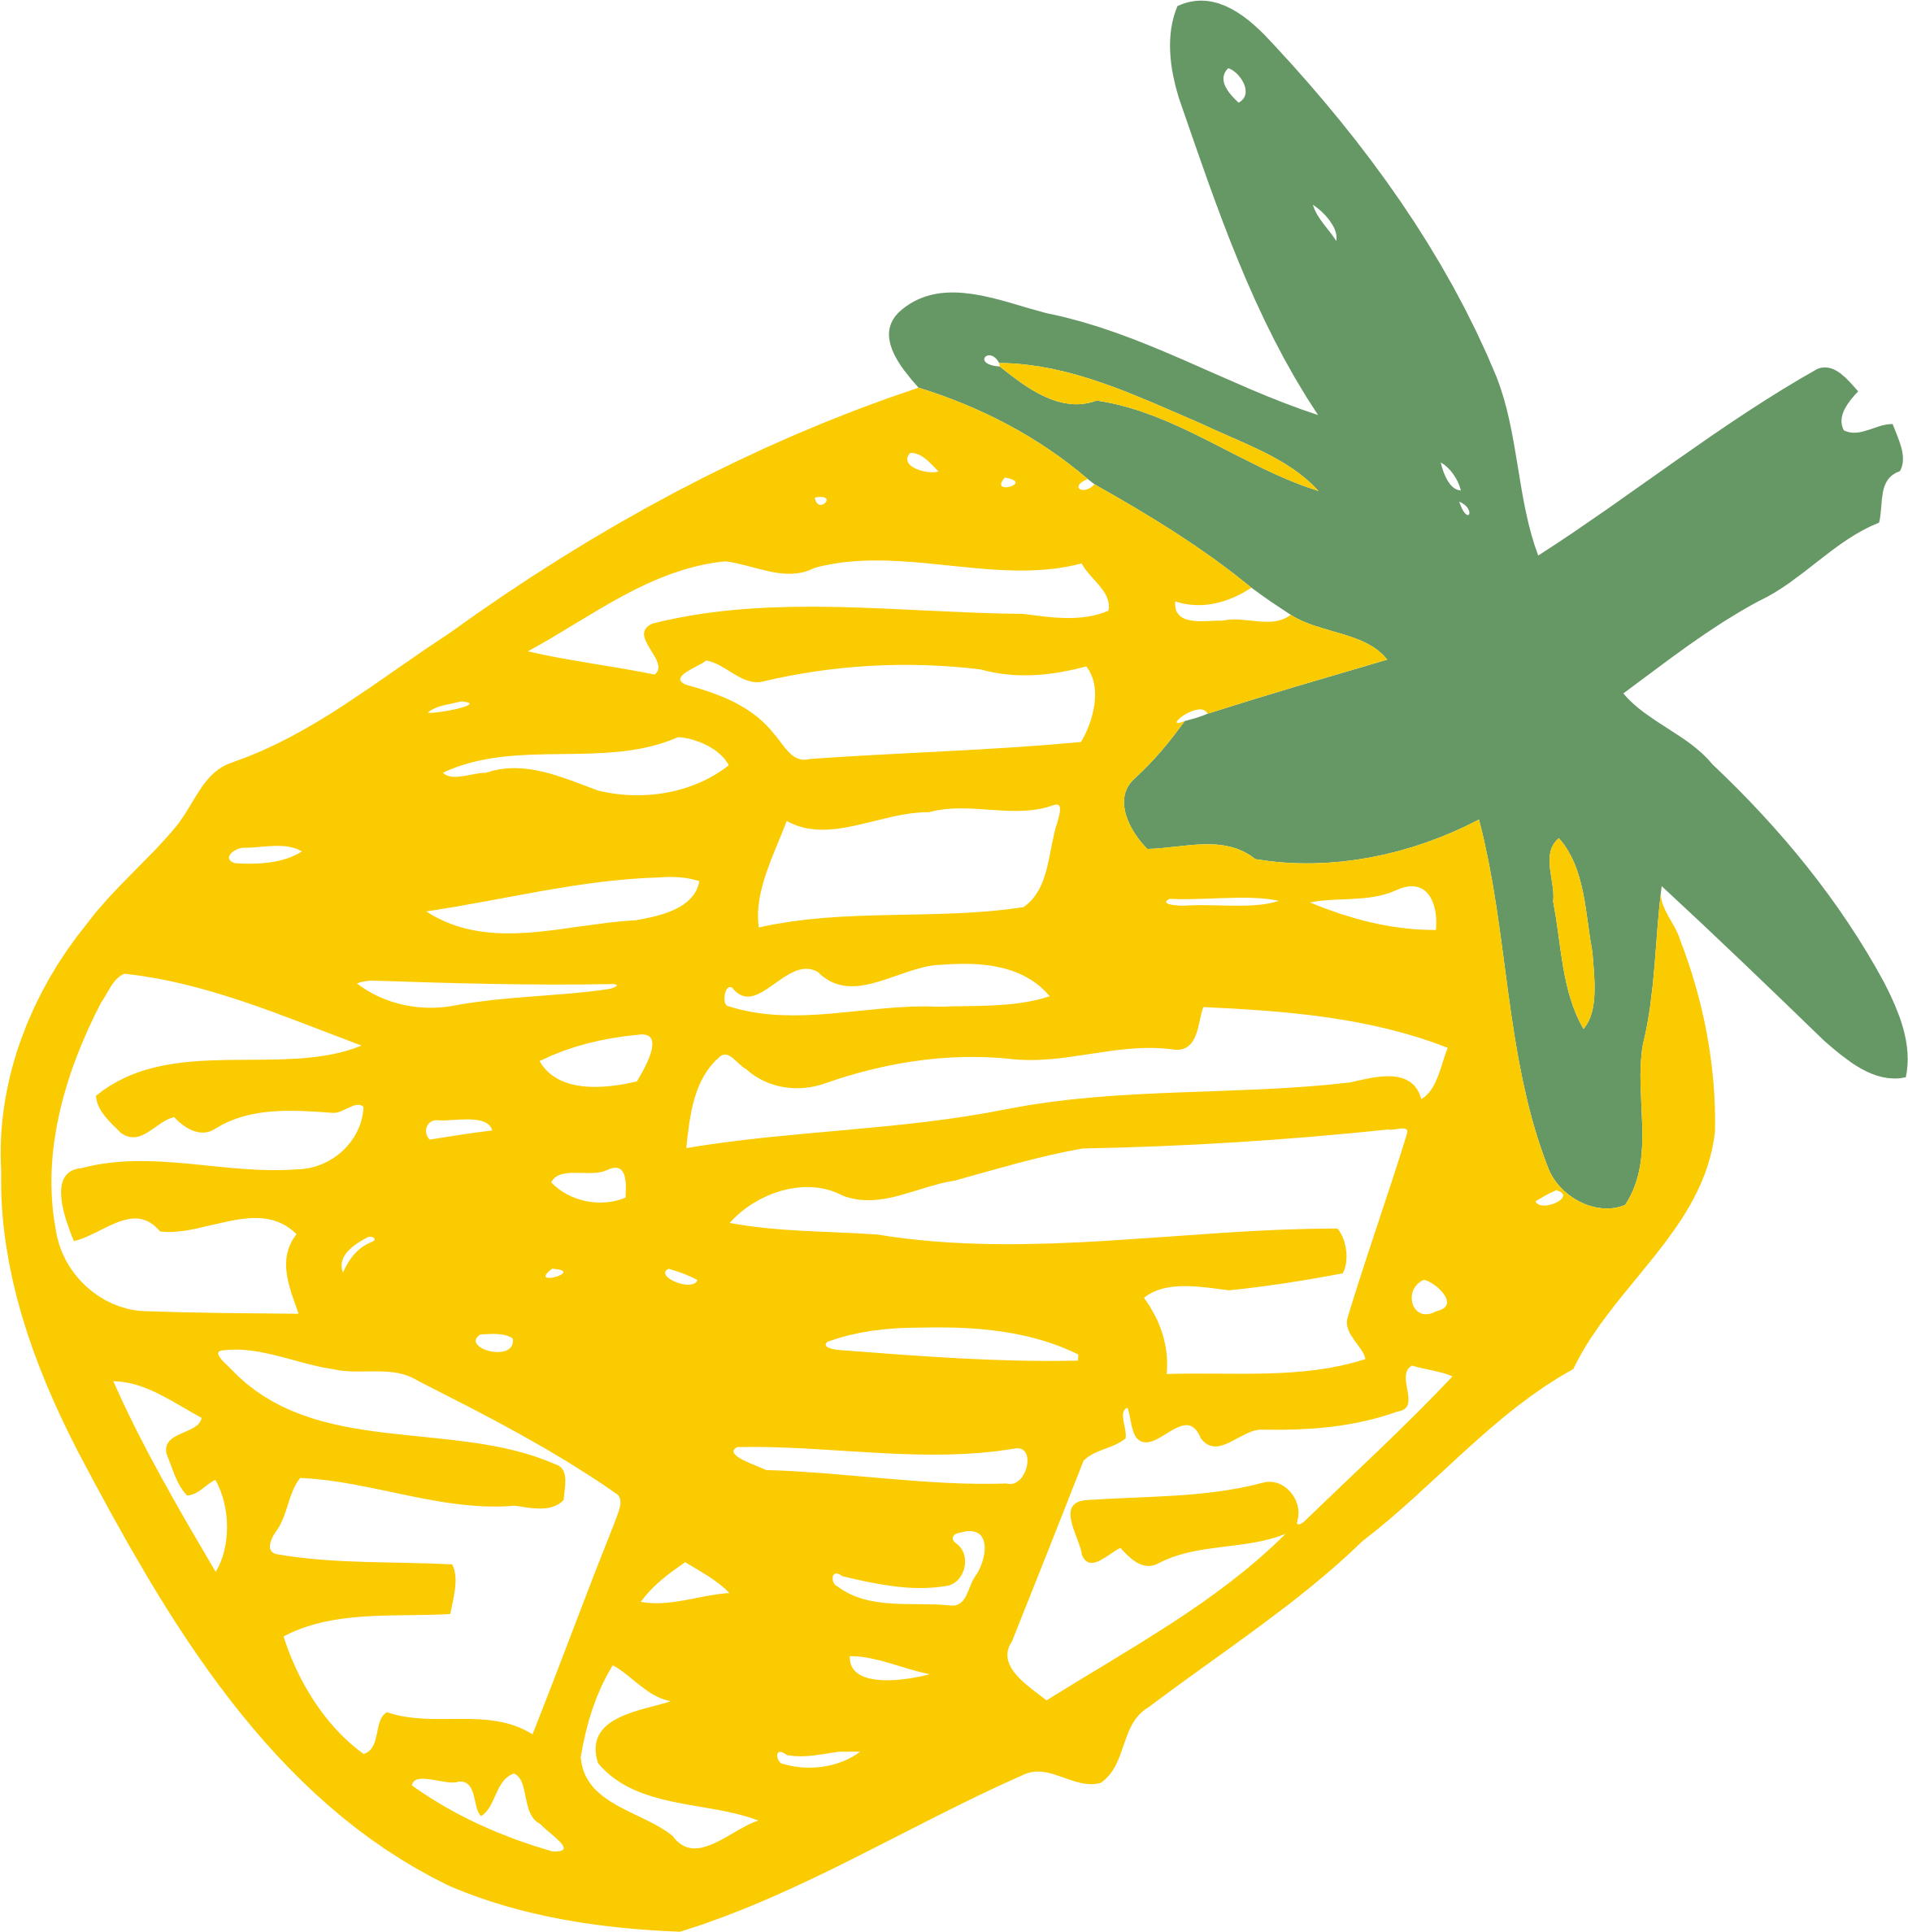 Sketched pineapple by Firkin